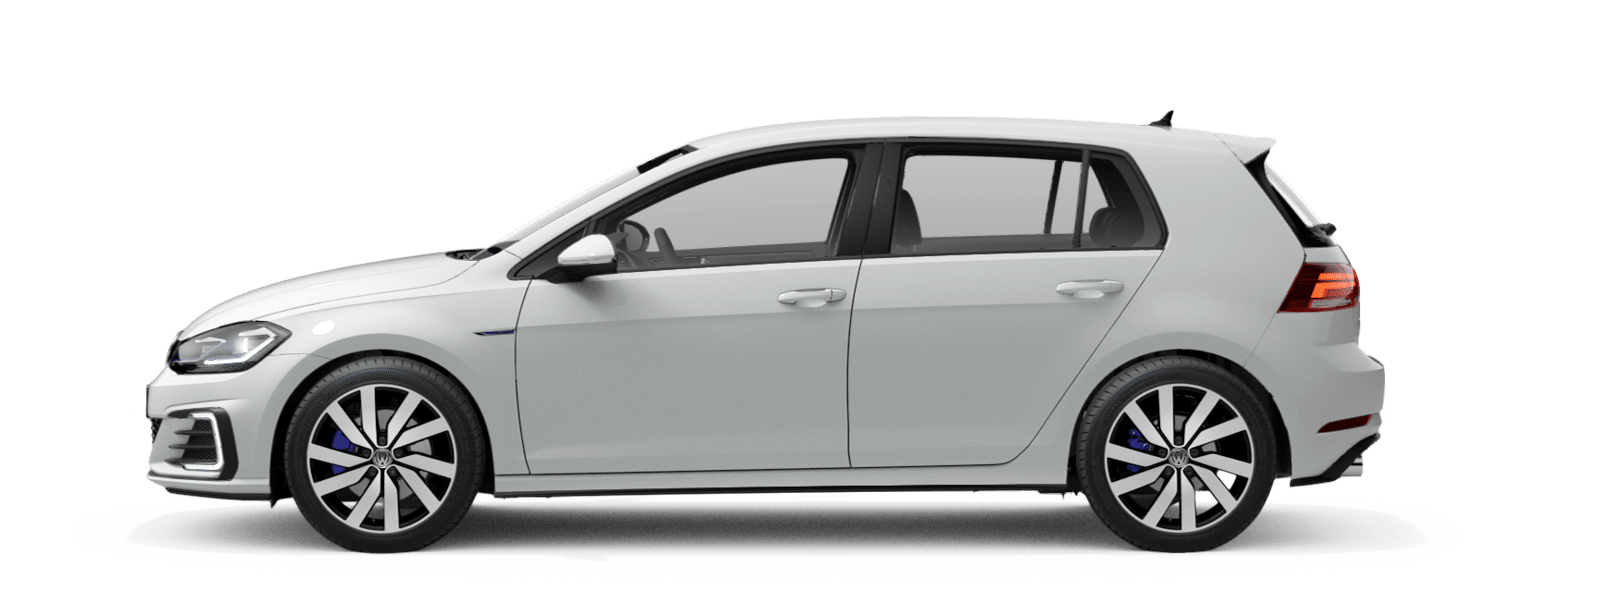 Golf GTE (Plug-in Hybrid)